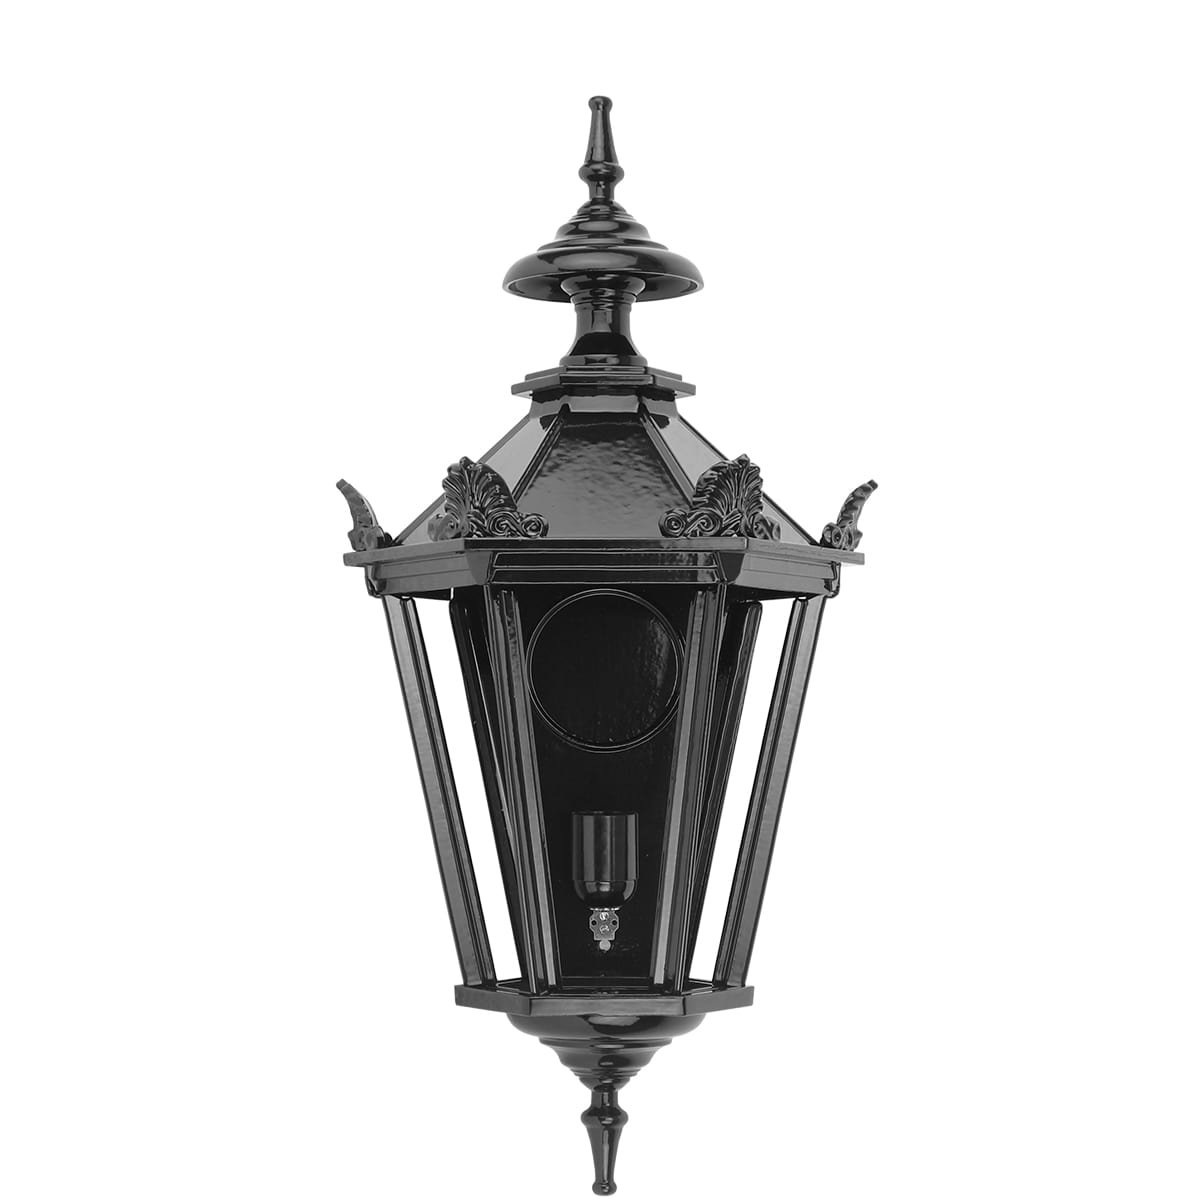 Outdoor lighting Classic Rural Wall lamp Zwolle with crowns M - 52 cm